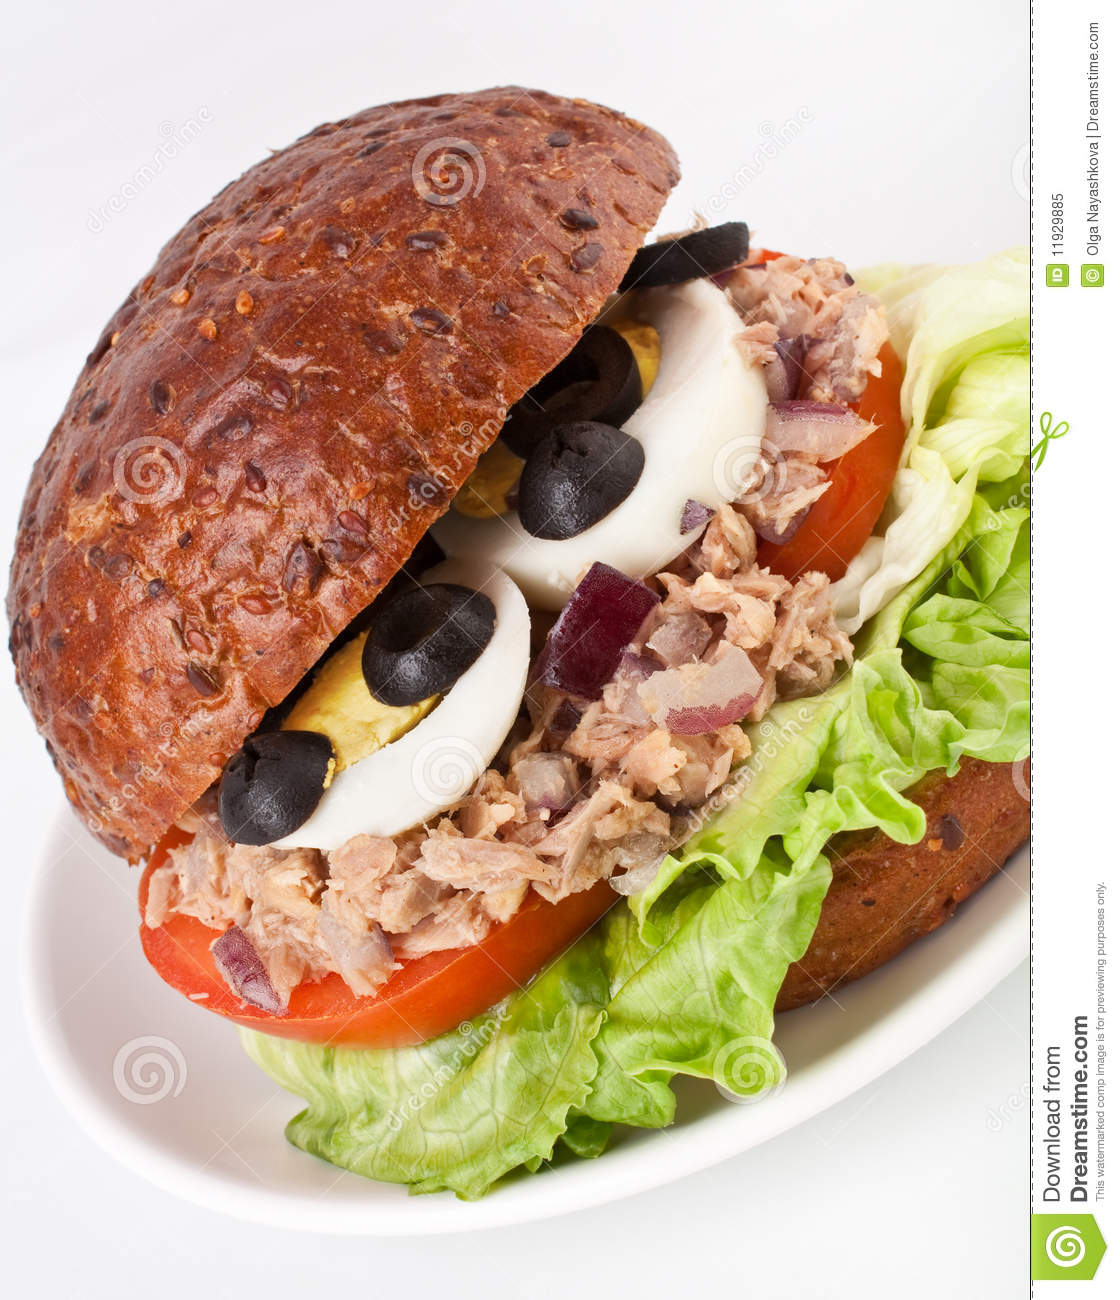 Tuna and egg sandwich royalty free stock photo image for Tuna and egg sandwich